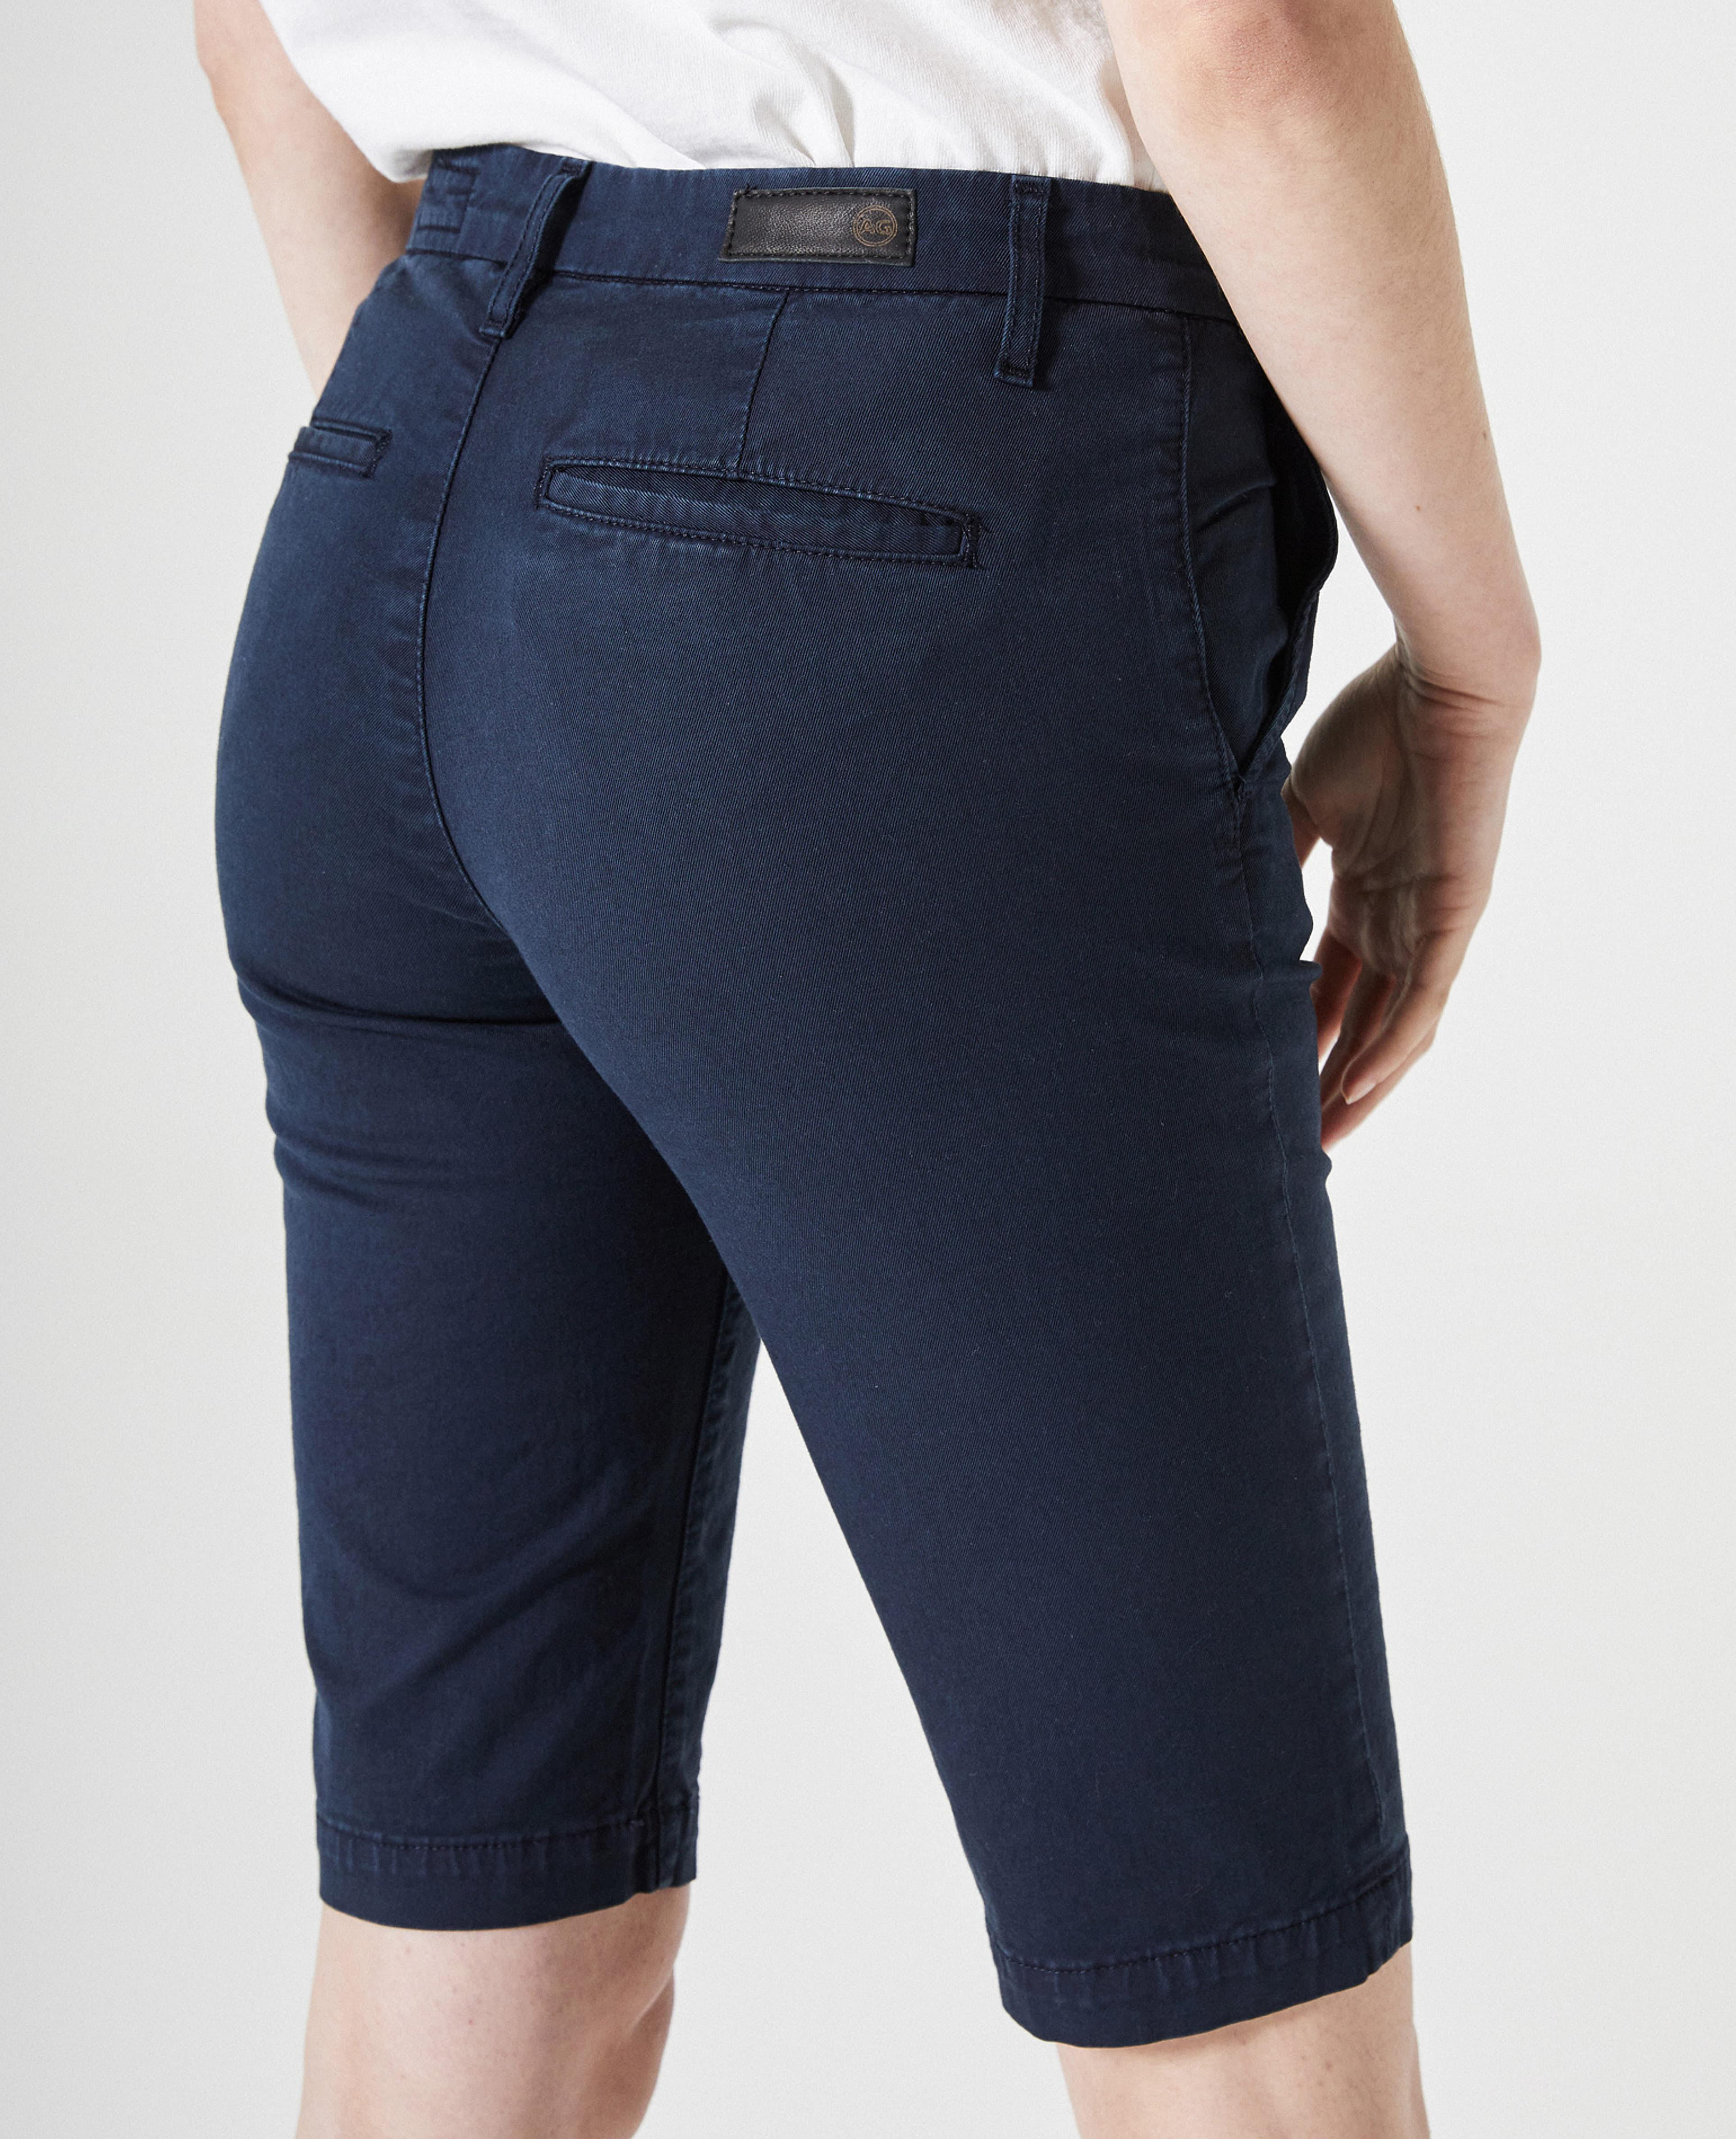 The Analise Short